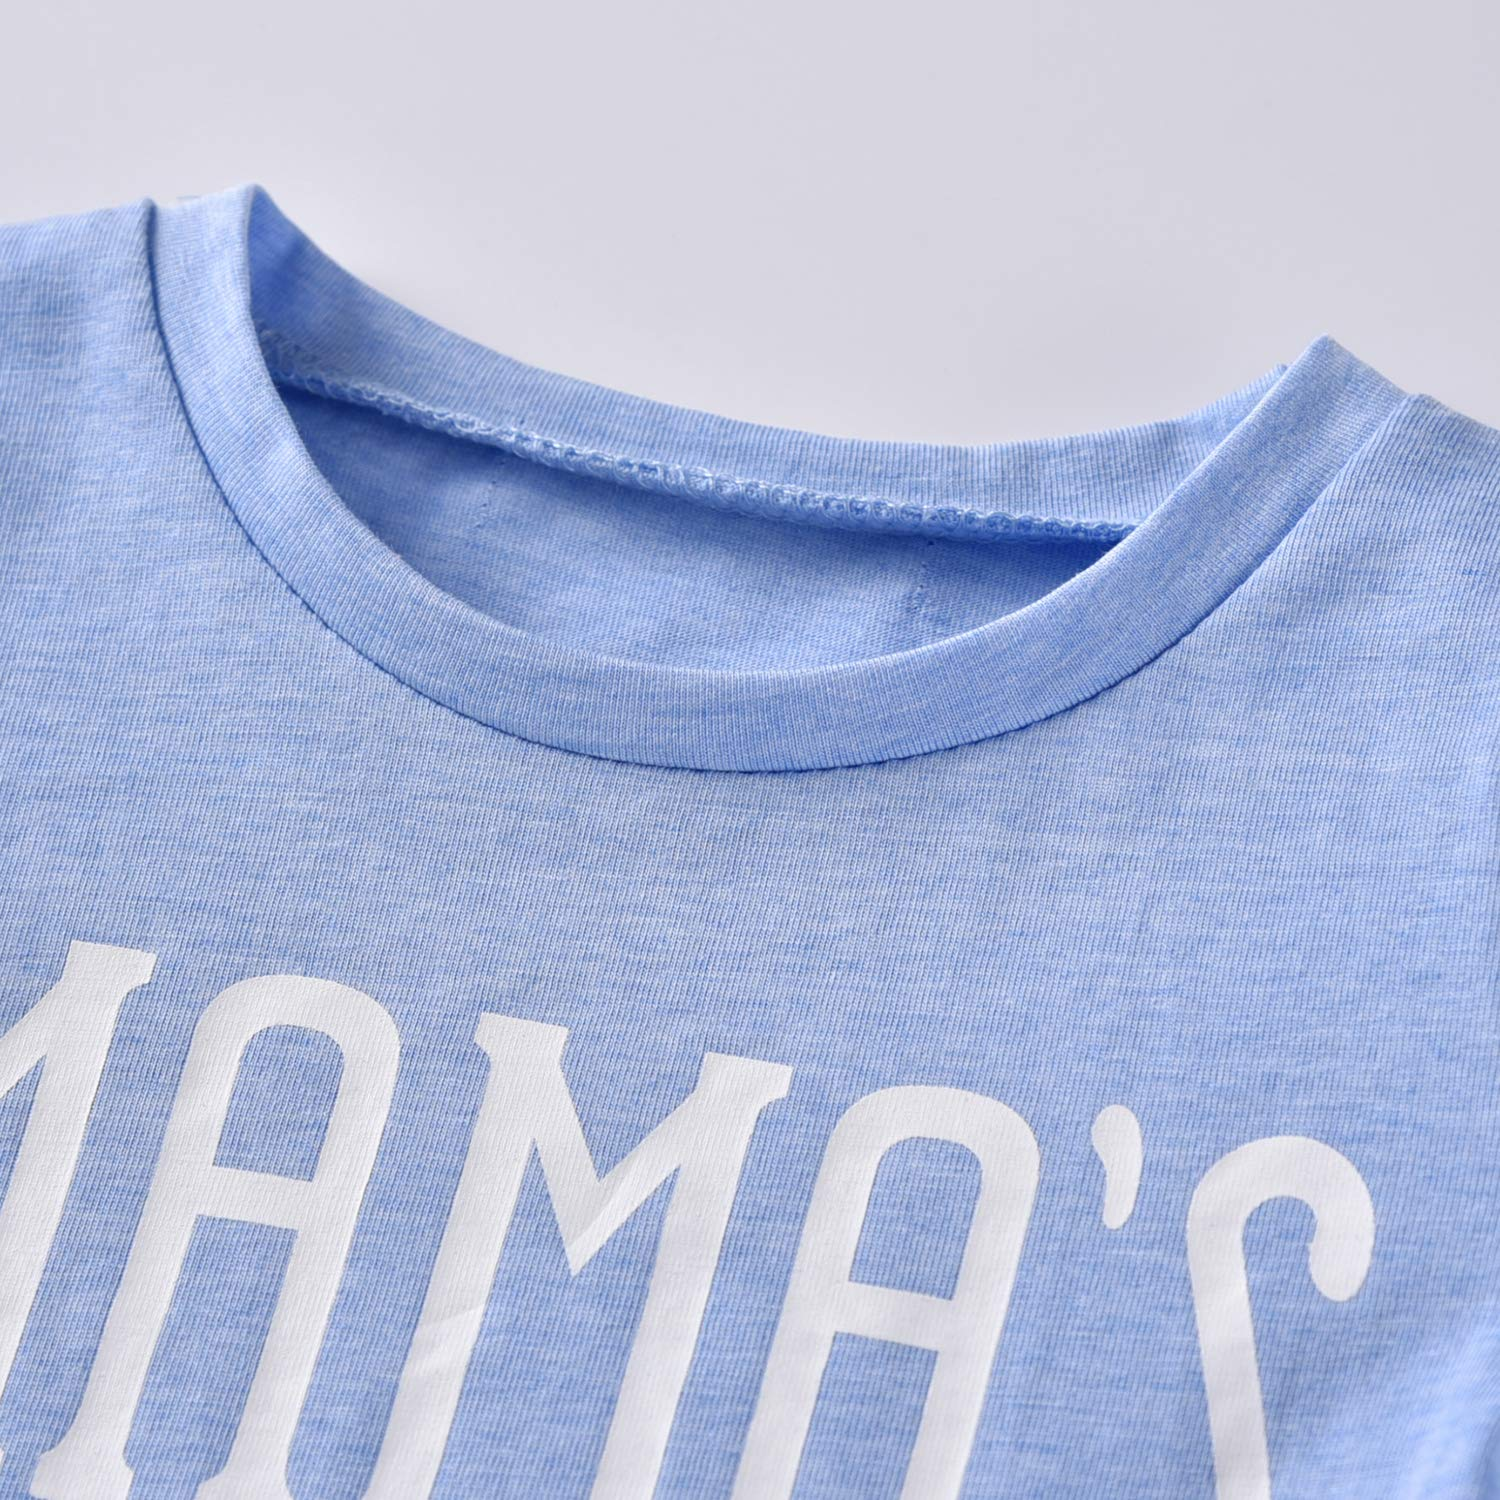 20cb75dd Baby Boys Mama's Boy Short Sleeve T-Shirt Tops Geometric Pants Clothes Set  larger image